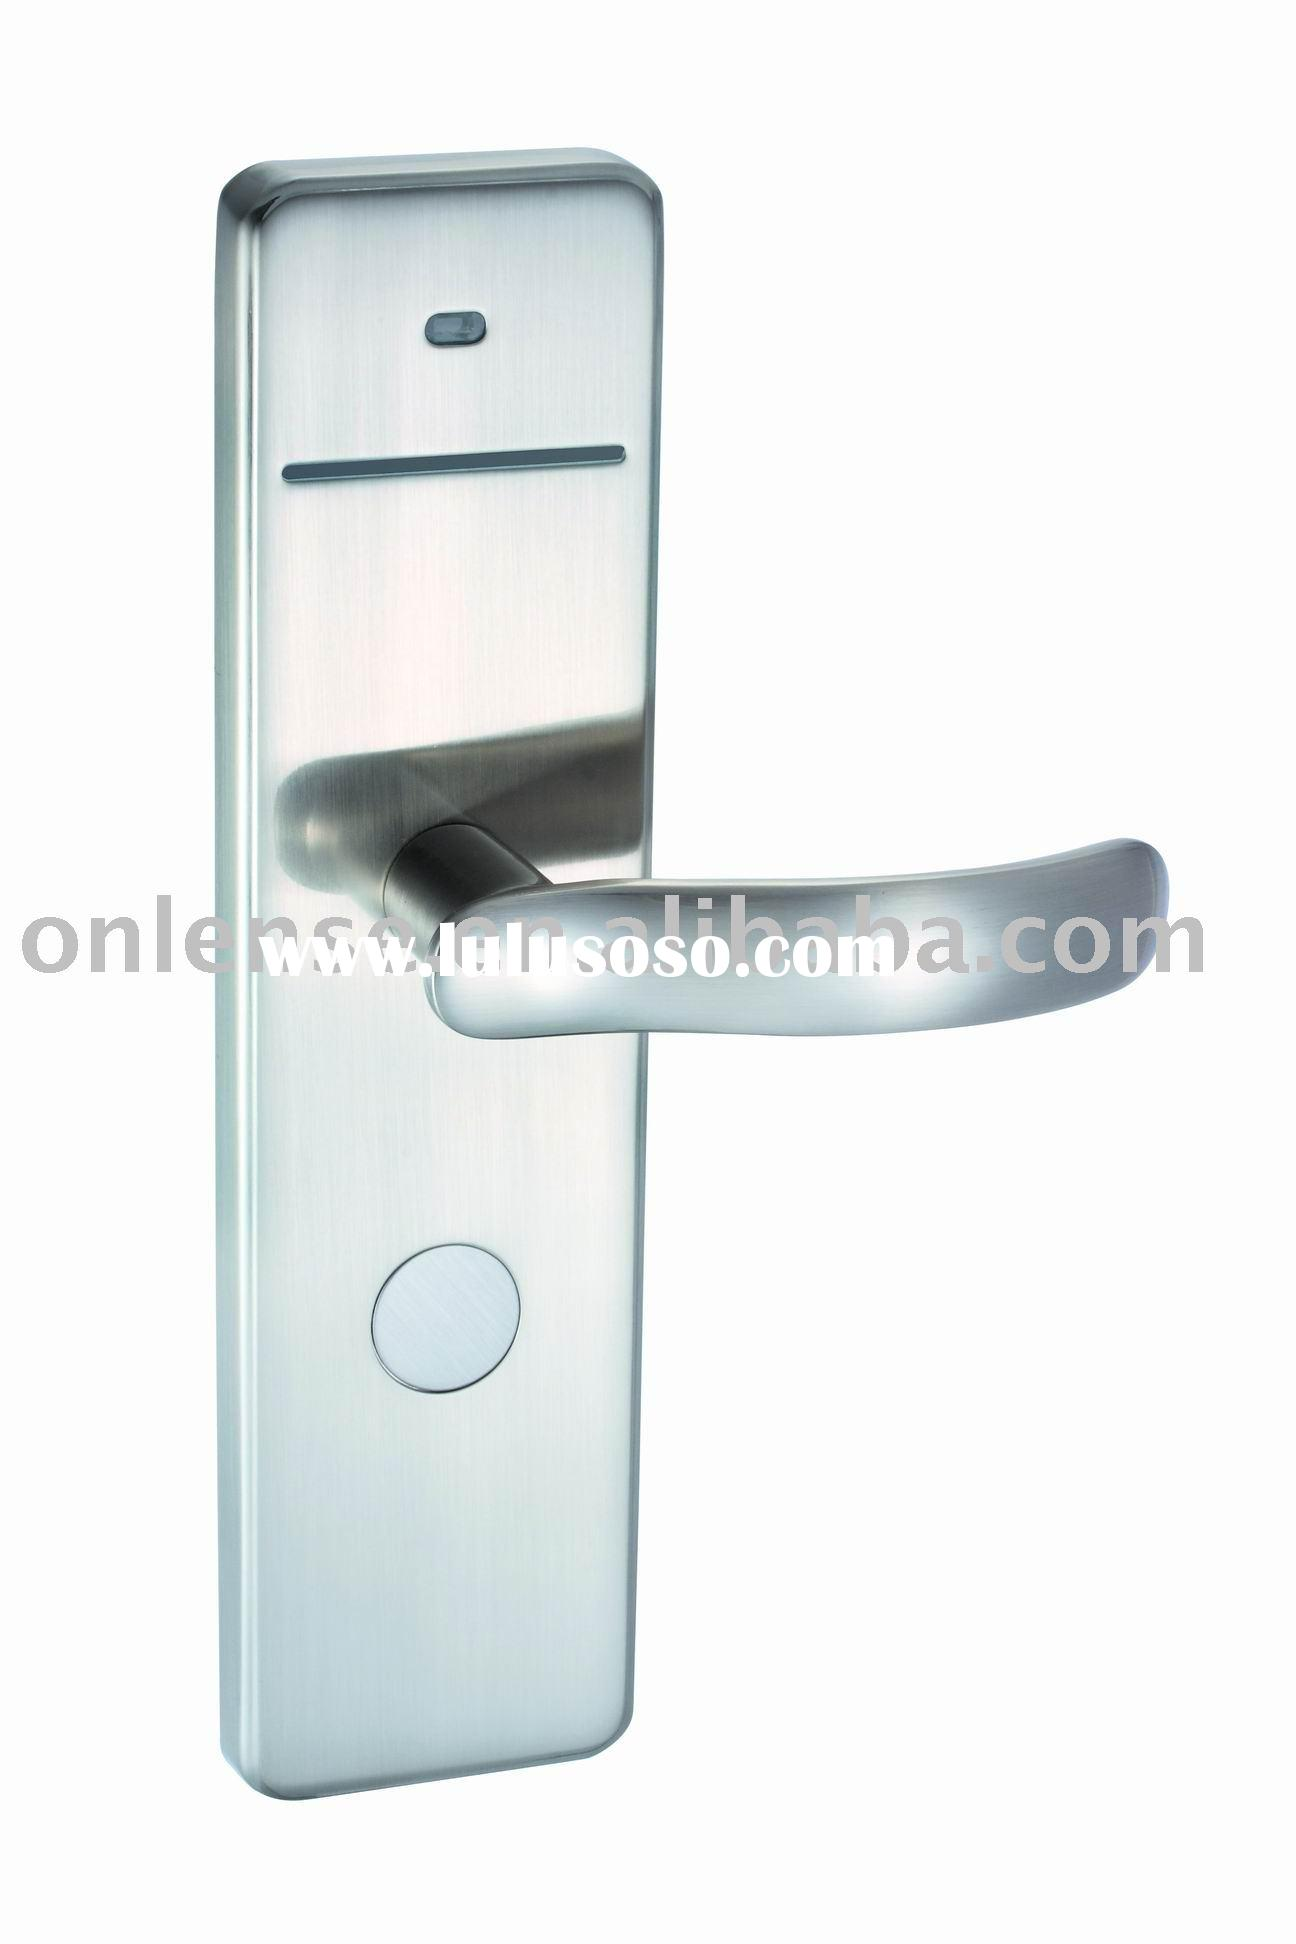 hotel door access control lock